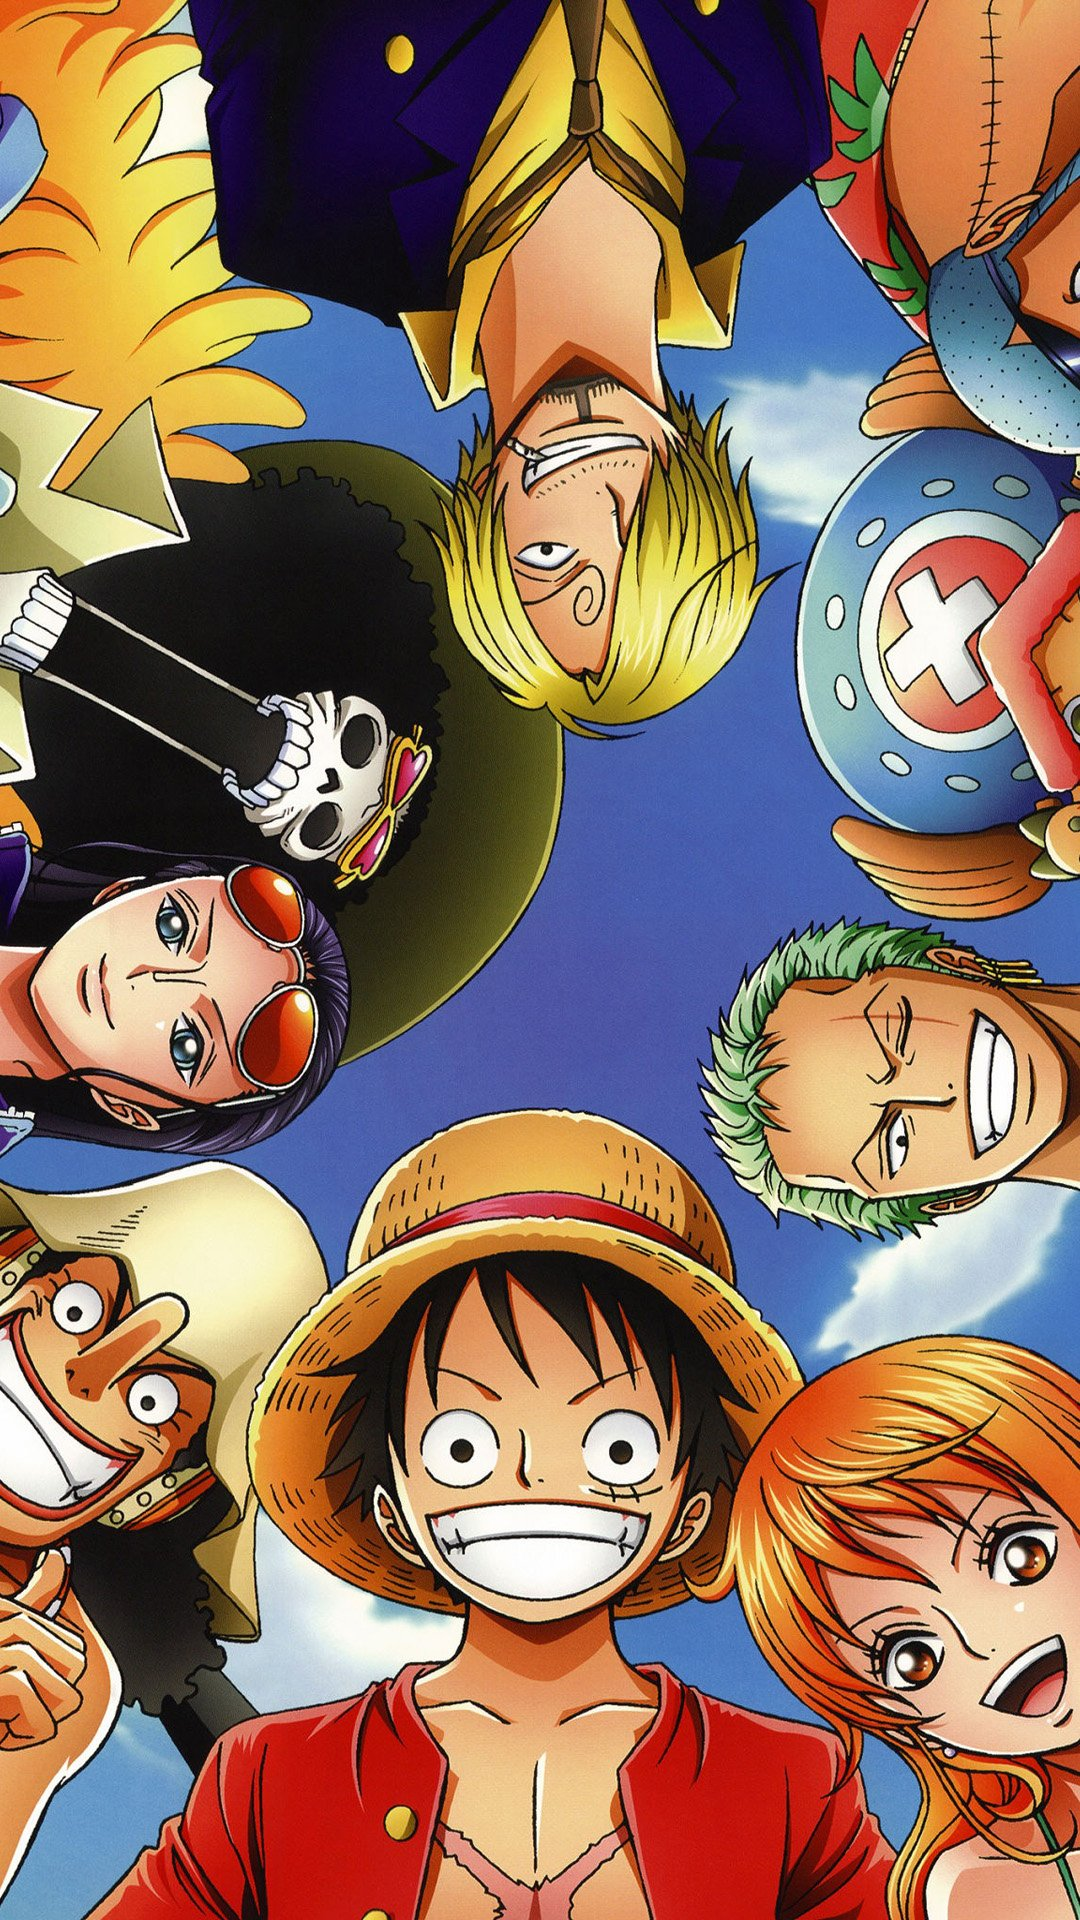 cartoon one piece 02 published 2014 04 28 tag one piece 6